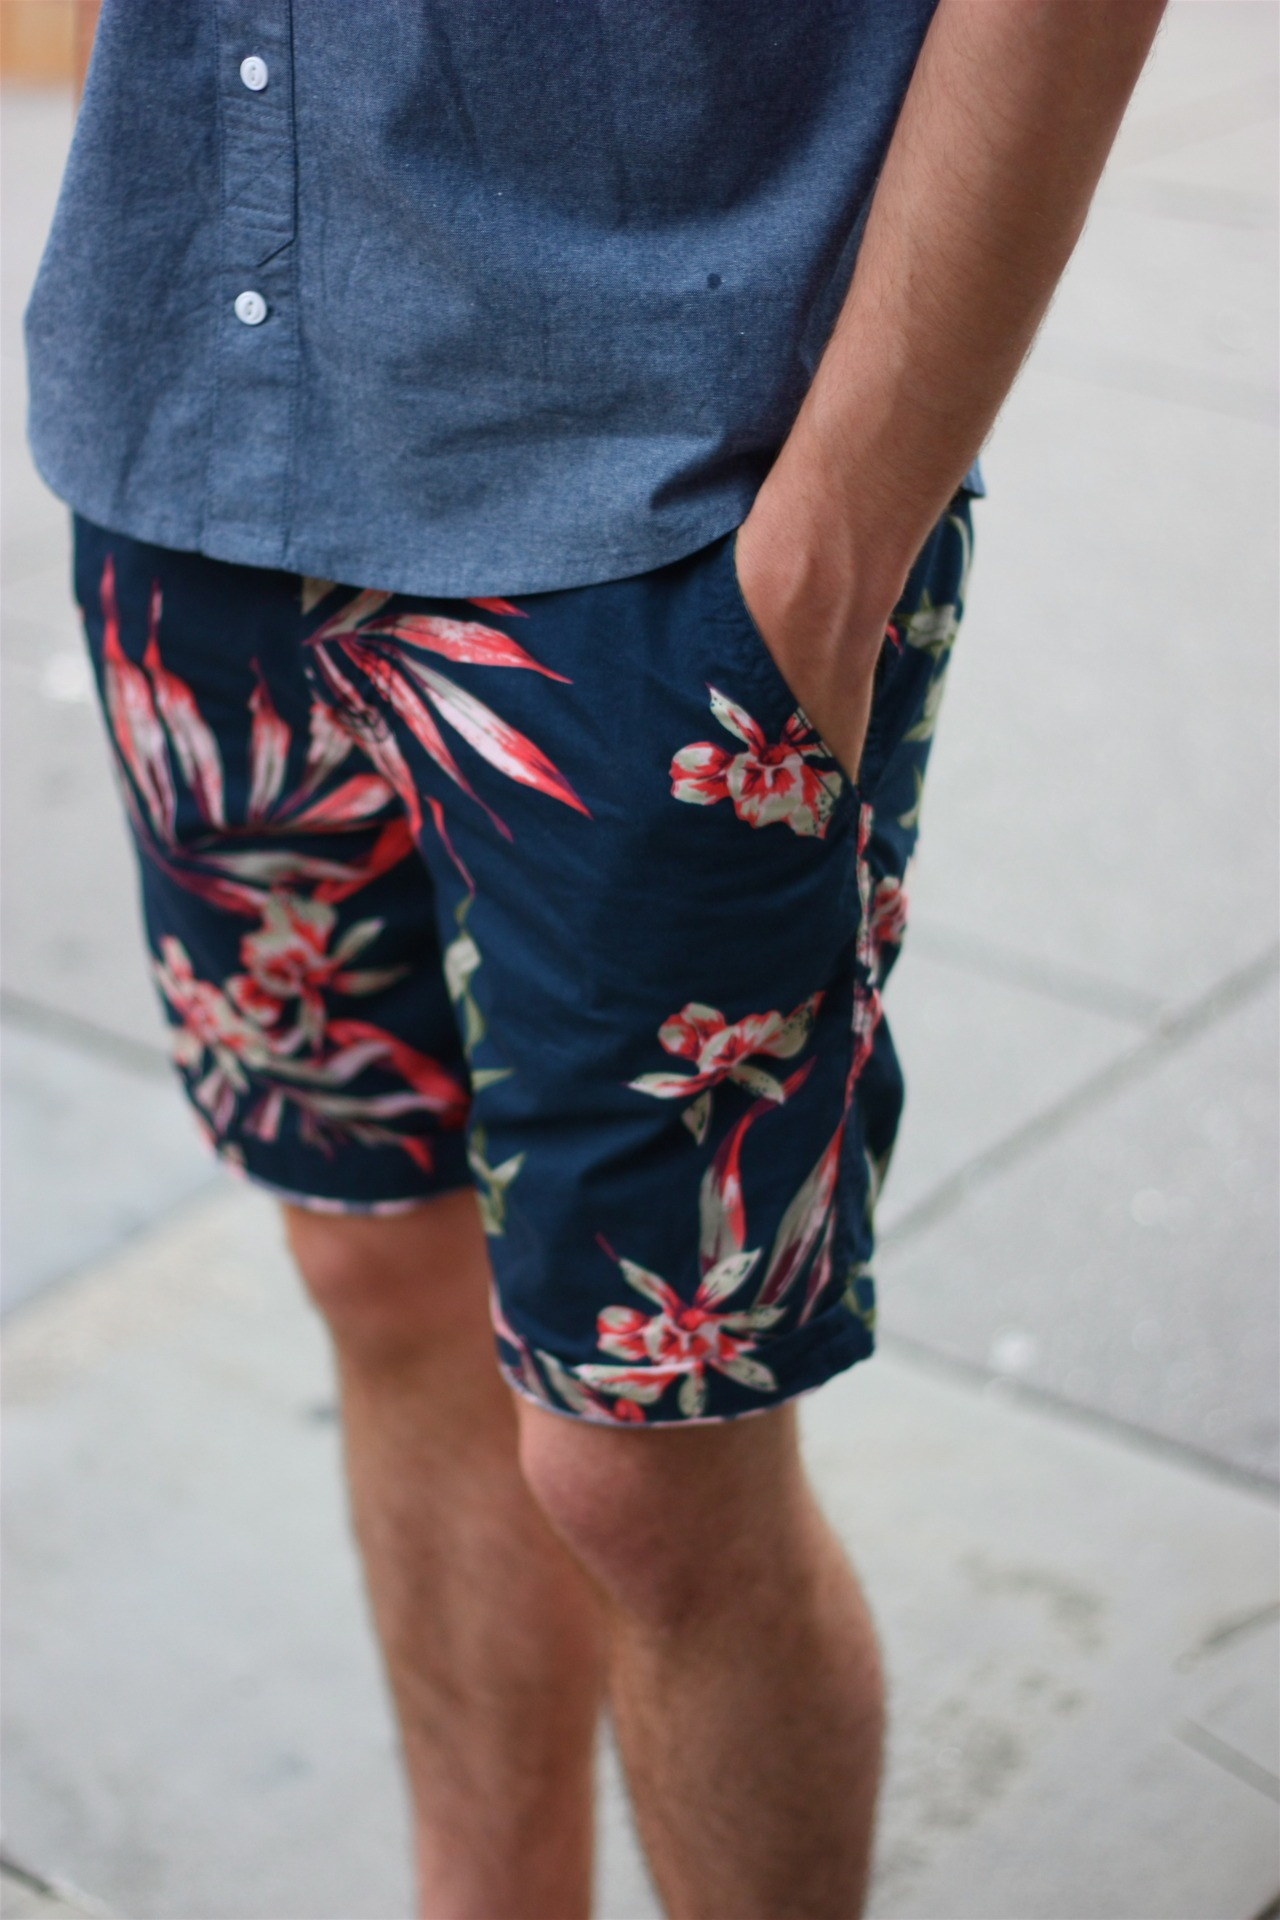 when i found out banana republic makes these shorts i was really surprised.